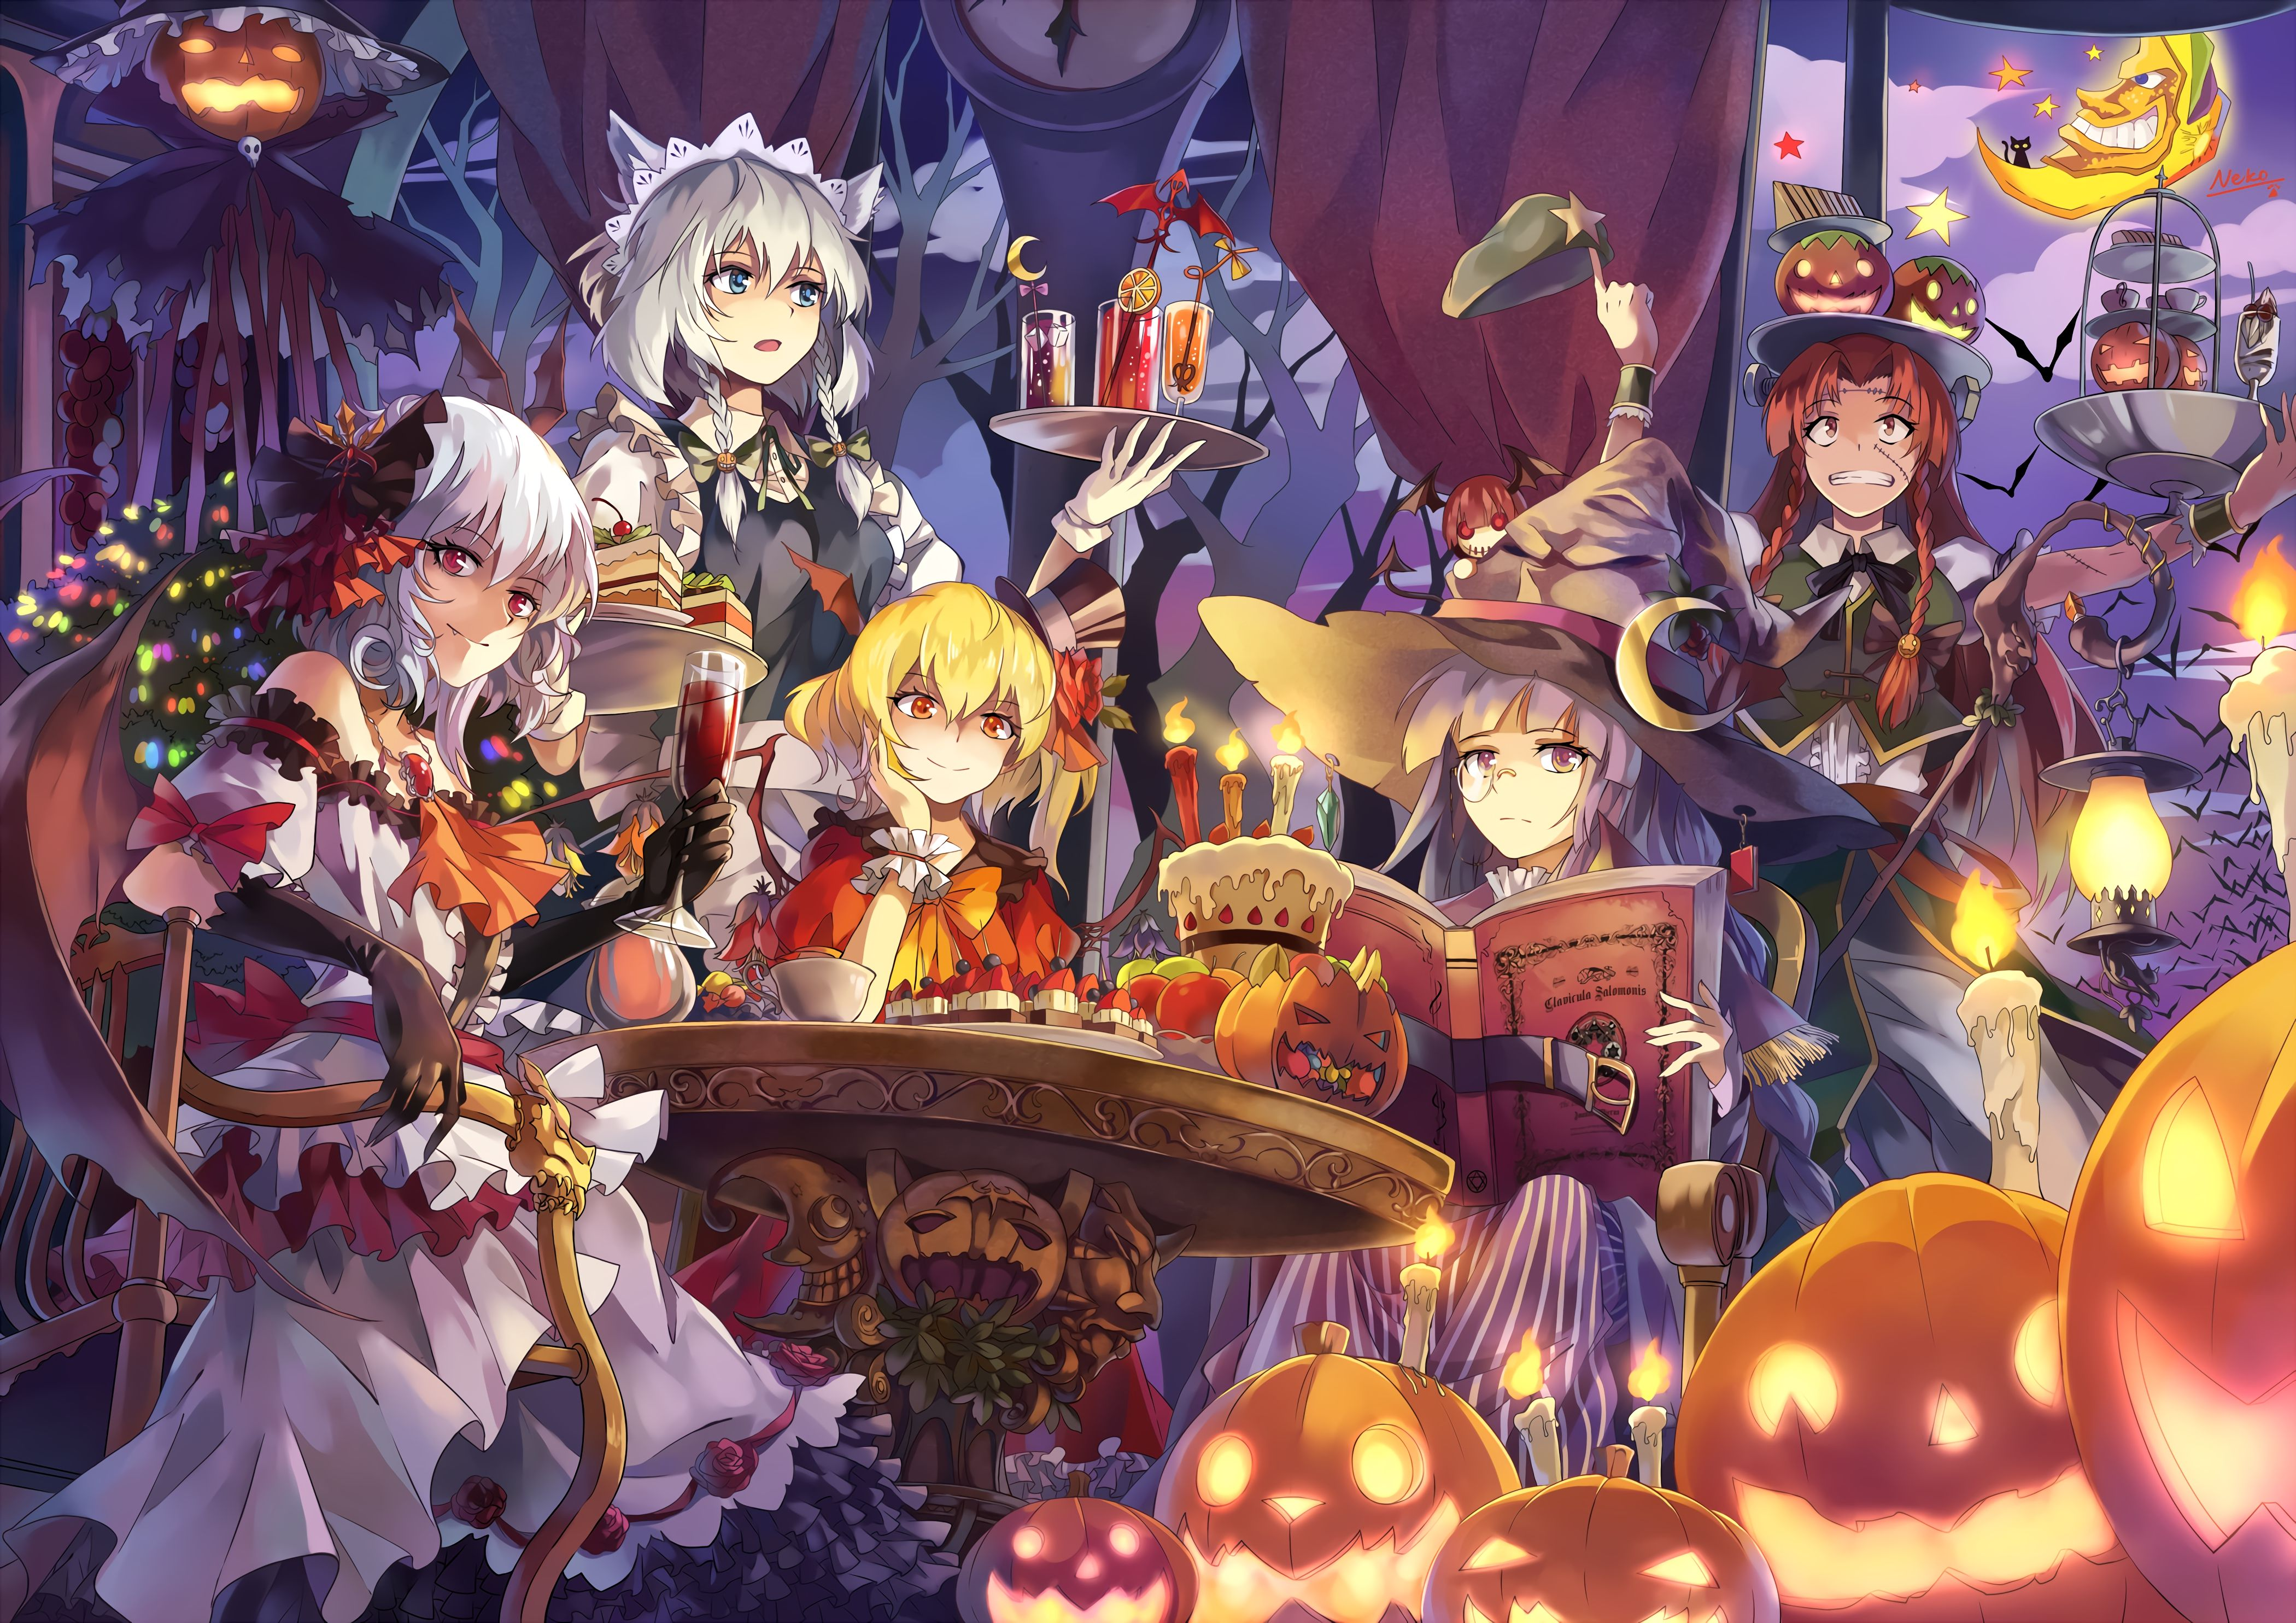 Red S Hall Halloween 4200x2968 Hd Wallpaper From Gallsource Com Anime Halloween Anime Wallpaper Anime Halloween anime wallpaper hd